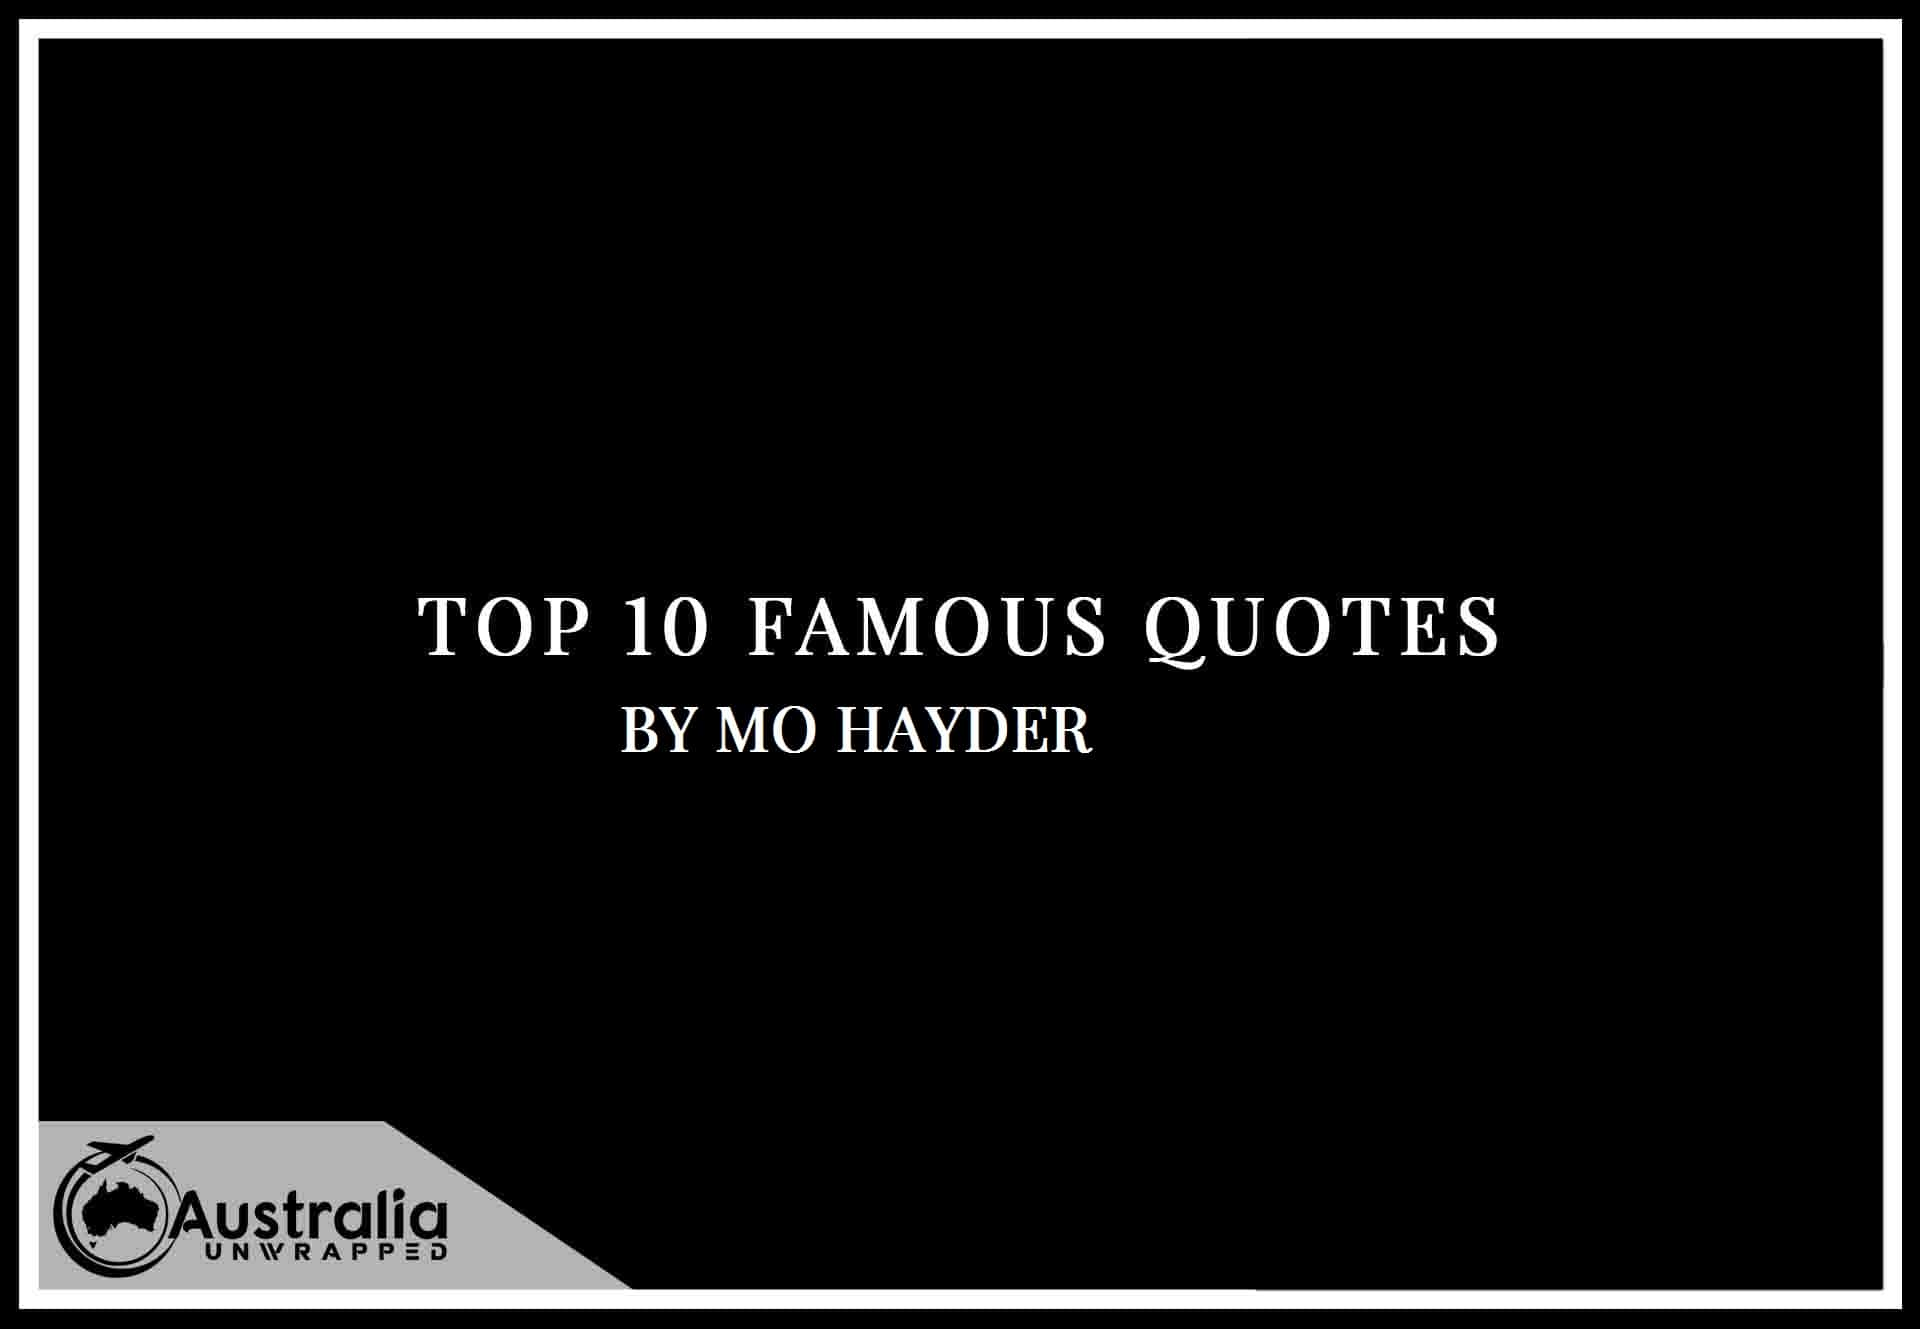 Mo Hayder's Top 10 Popular and Famous Quotes